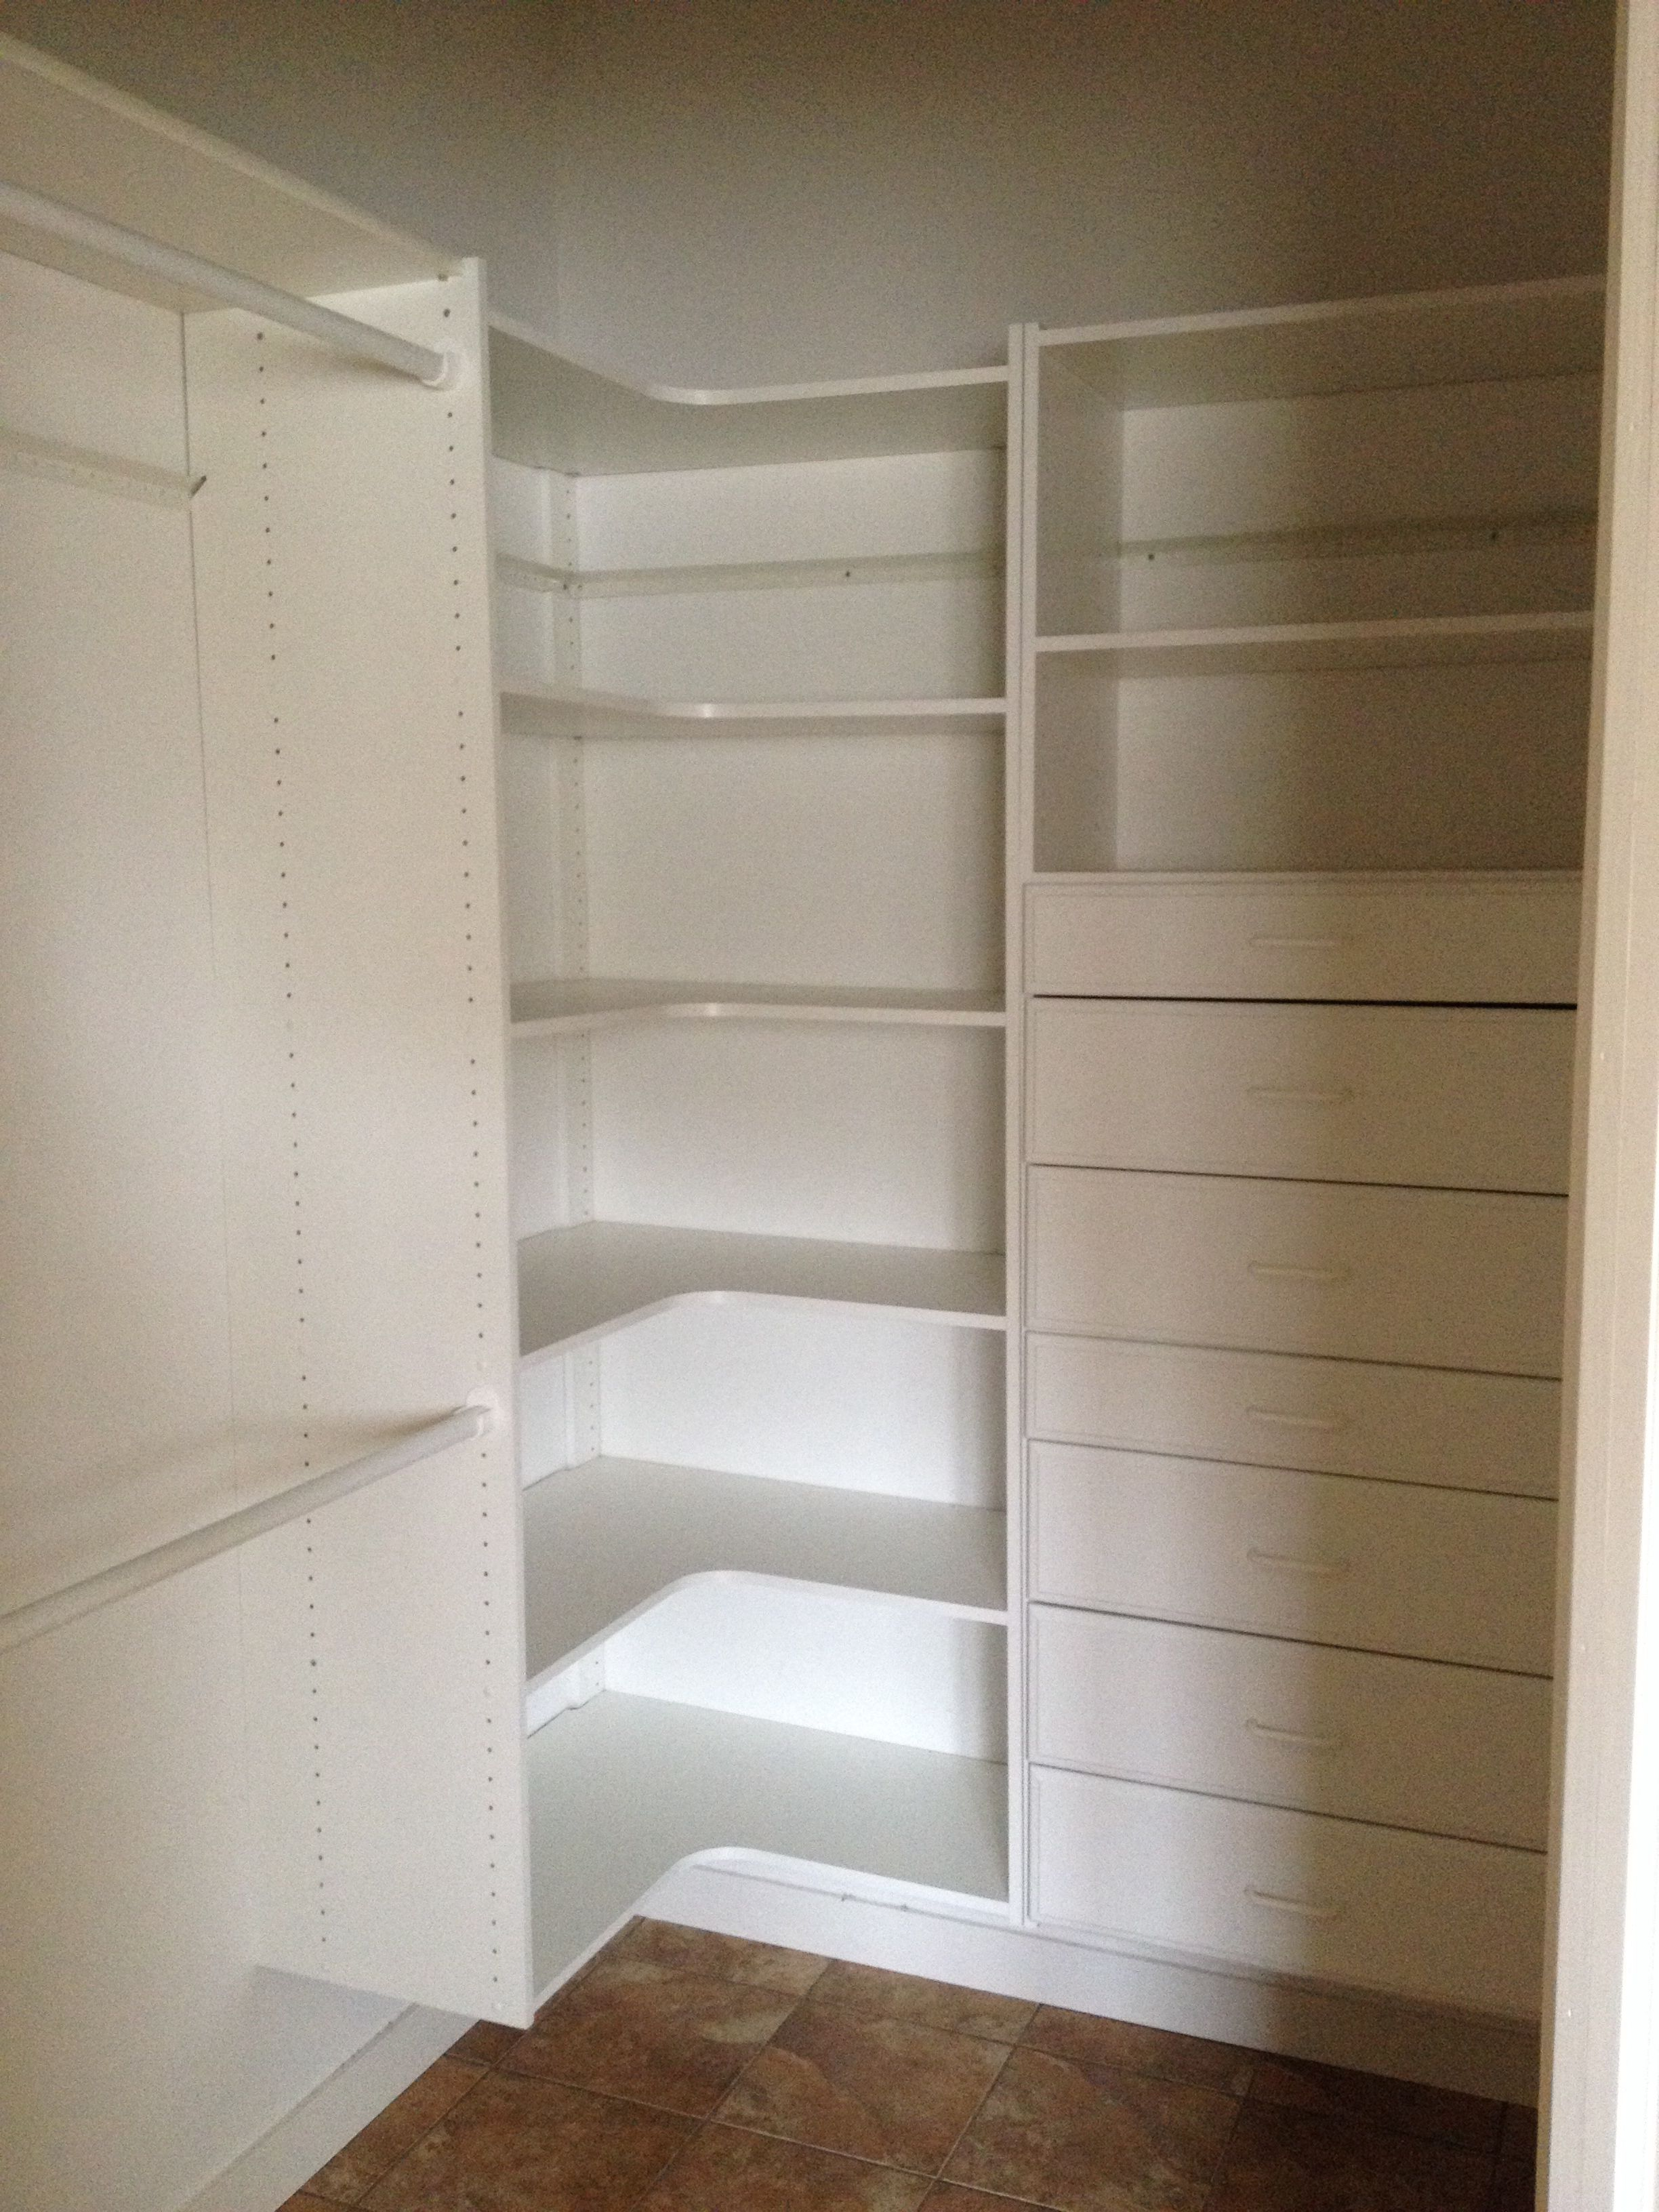 Master bedroom walk in closet idea for maximum storage and for How to design a master bedroom closet